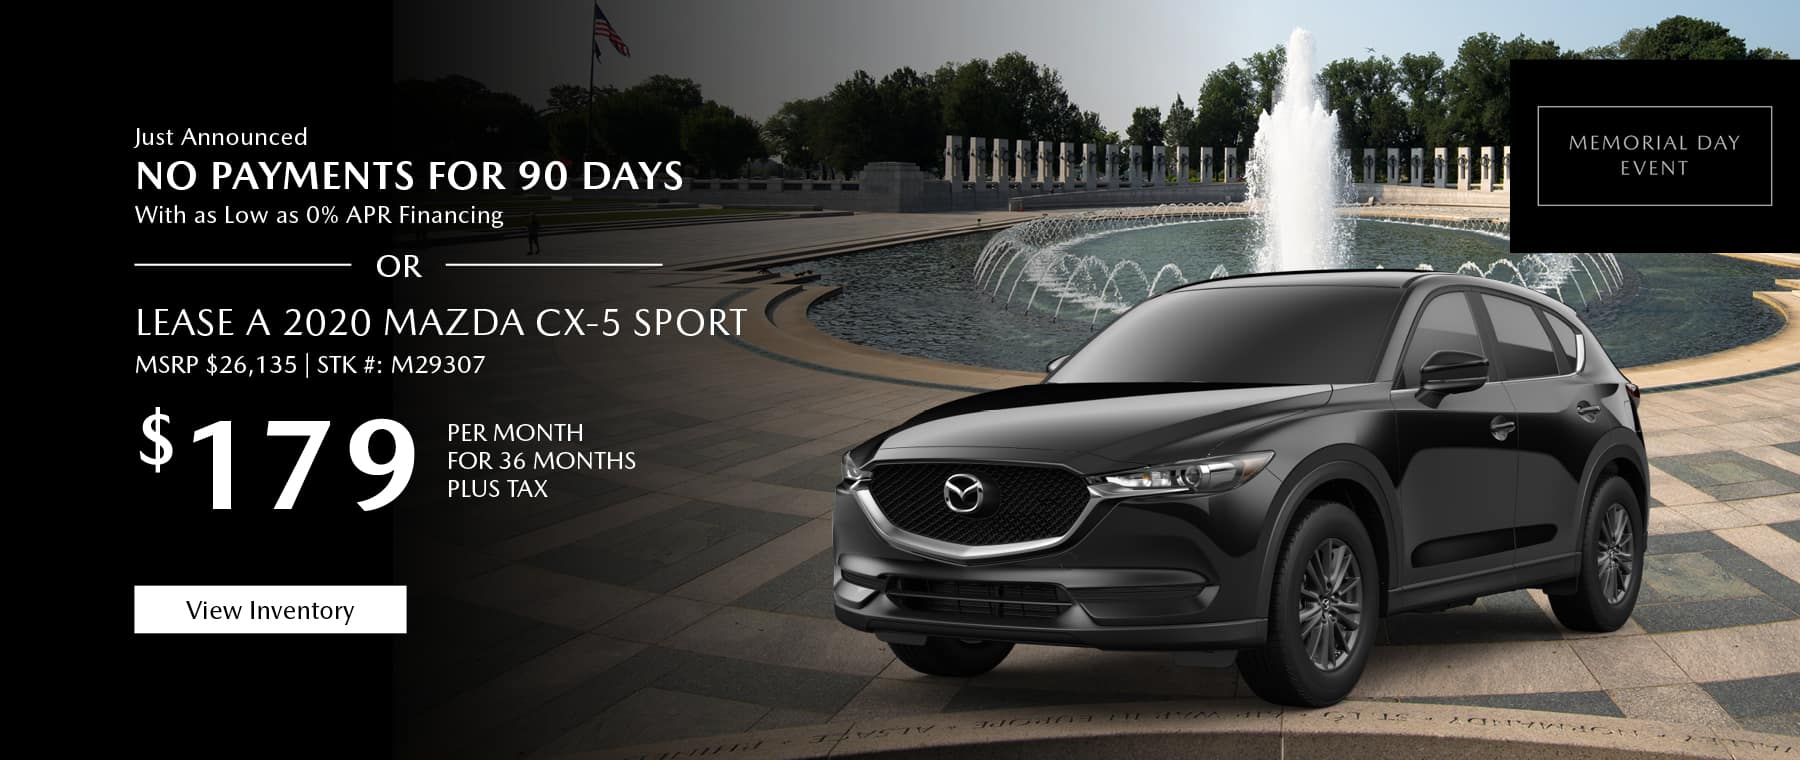 Just Announced, No payments for 90 days with as low as %0 APR financing, or lease the 2020 Mazda CX-5 for $189 per month, plus tax. Gunther will waive your first 2 lease payments. View inventory.